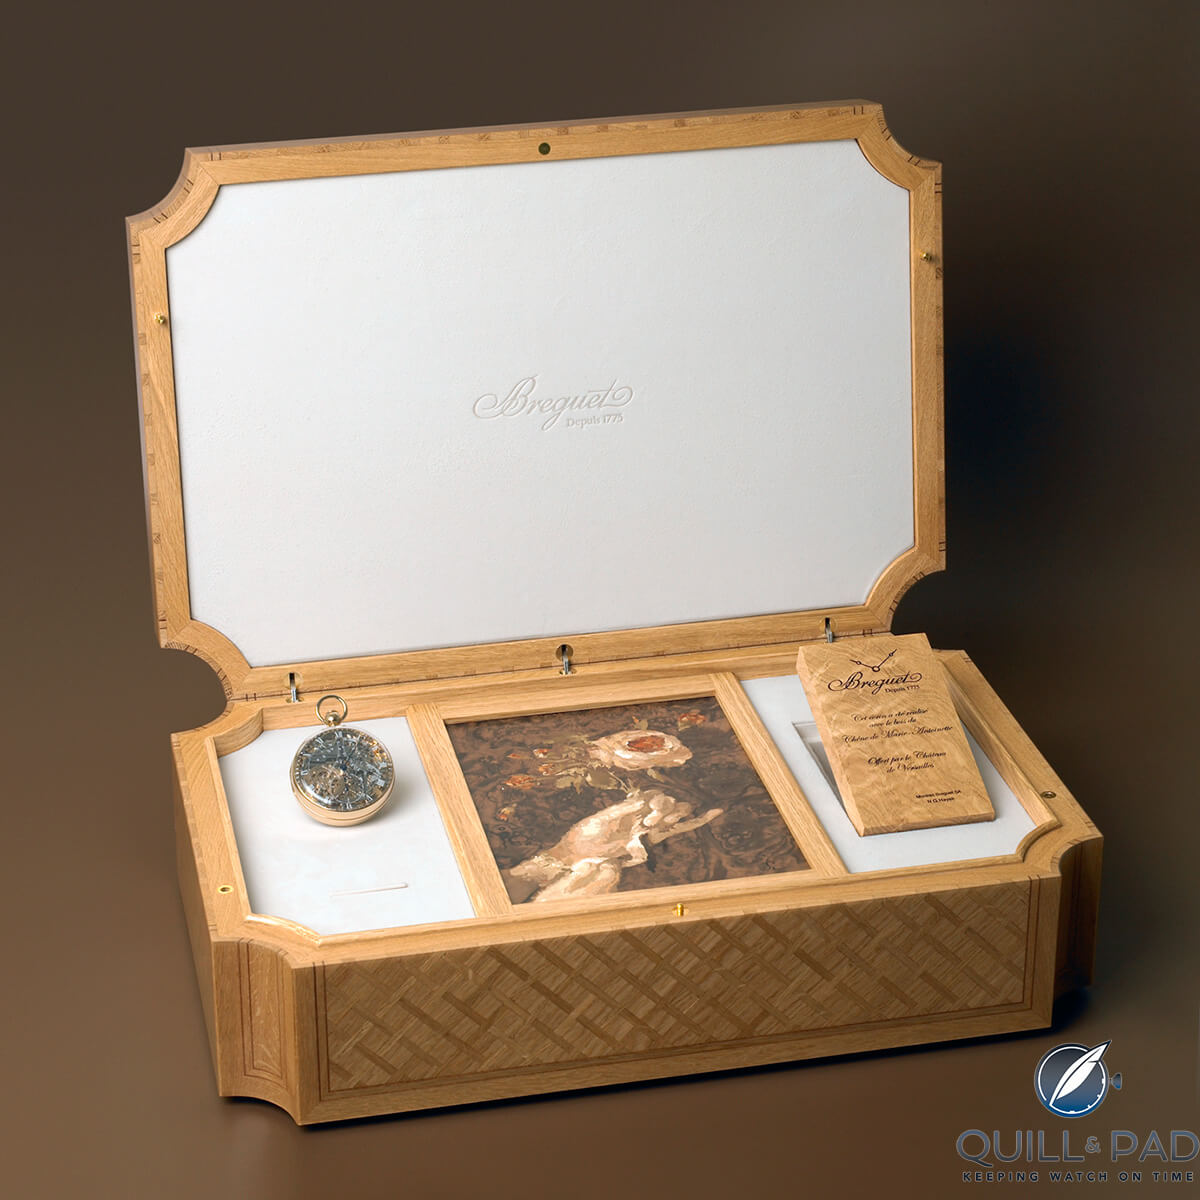 The presentation case for the Breguet Grande Complication No. 1160 made from the timber of Marie Antoinette's favorite oak tree